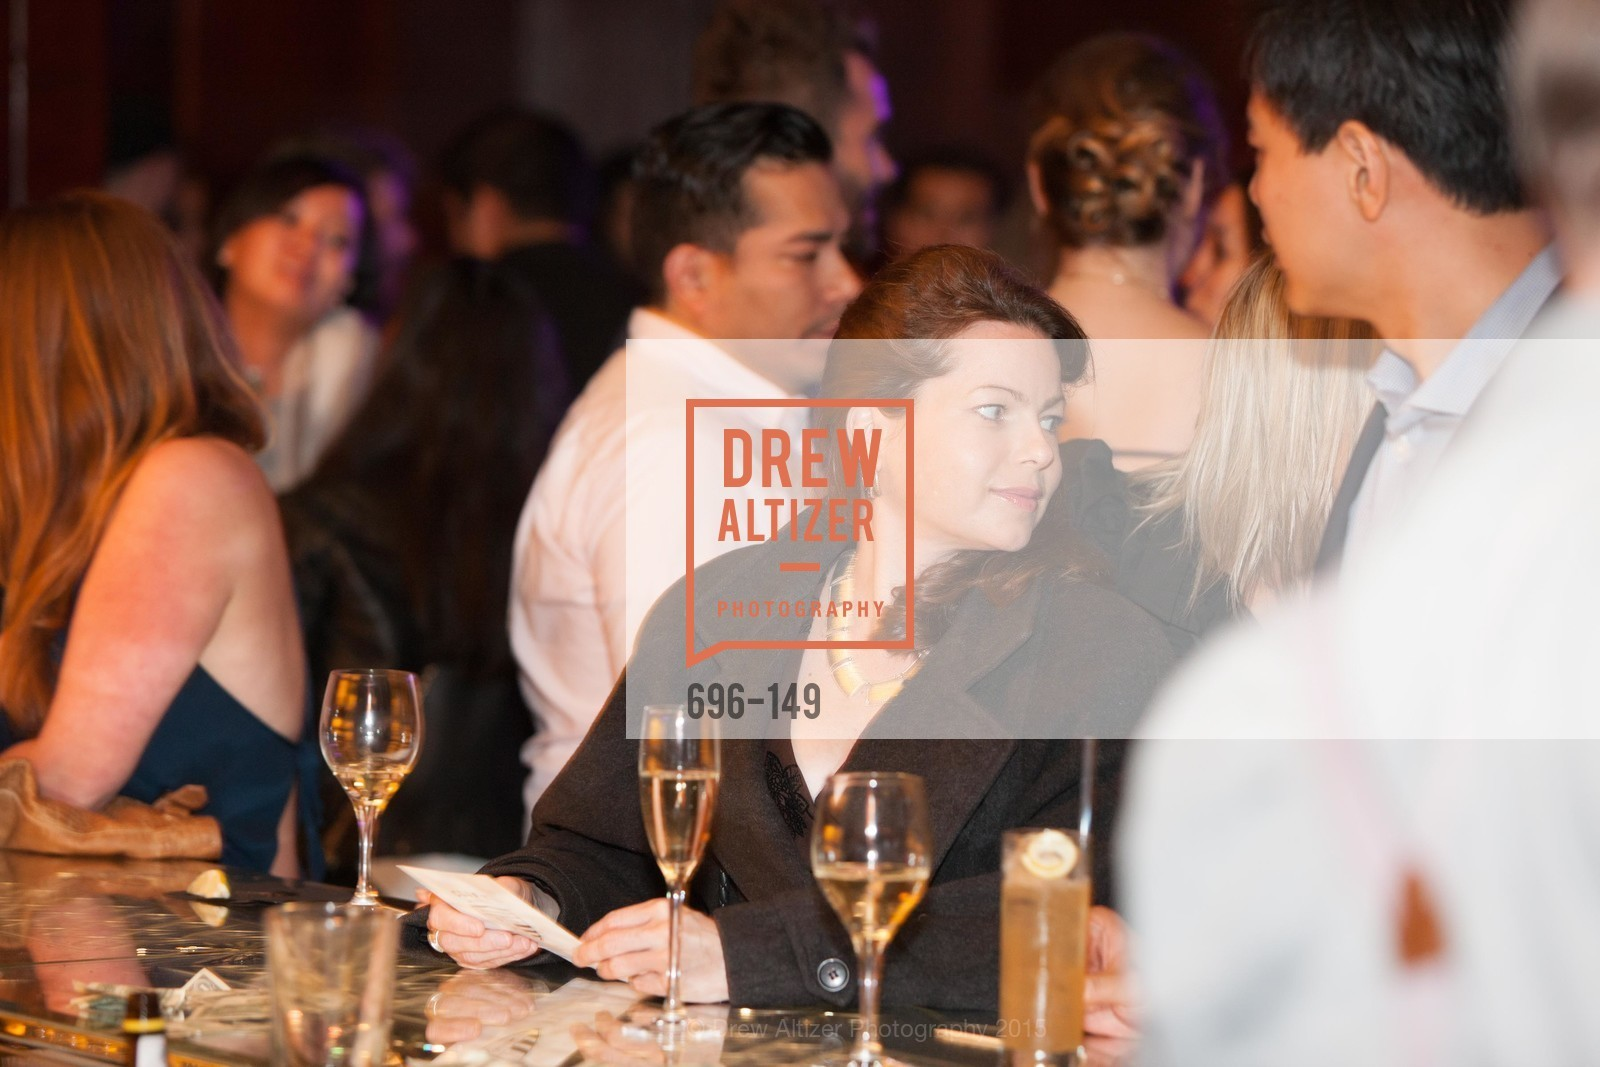 Extras, CLIFT San Francisco Celebrates 100 Years, June 3rd, 2015, Photo,Drew Altizer, Drew Altizer Photography, full-service agency, private events, San Francisco photographer, photographer california